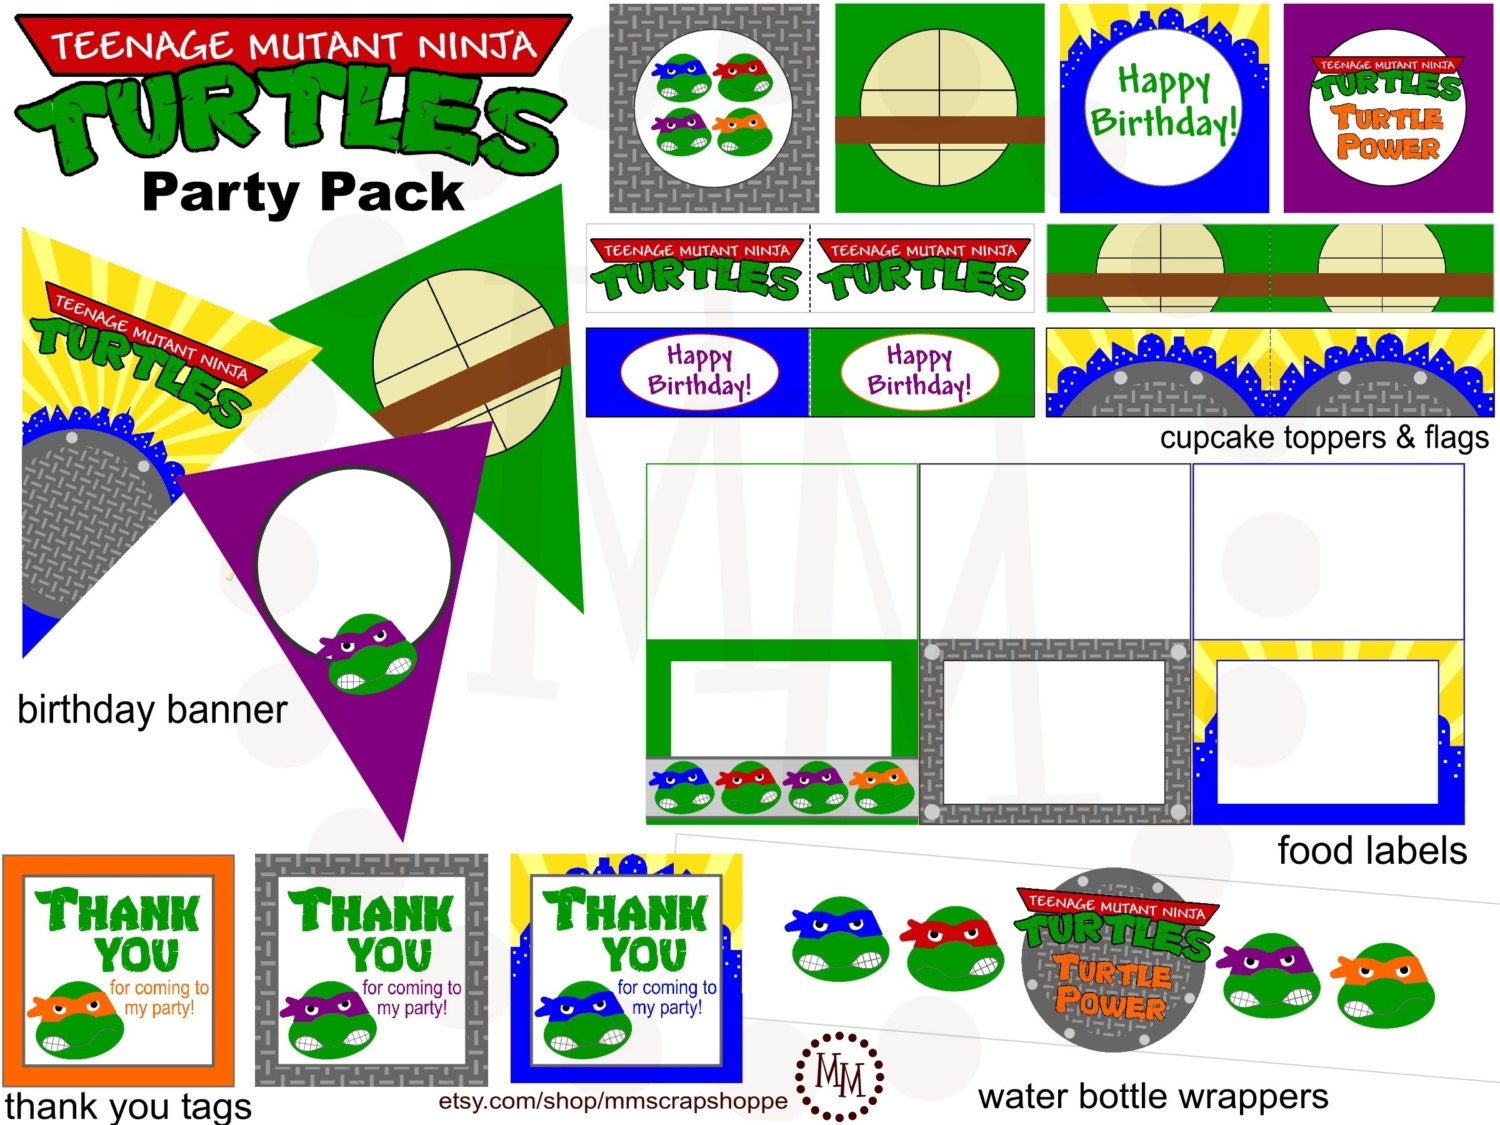 Teenage Mutant Ninja Turtles Party Printables